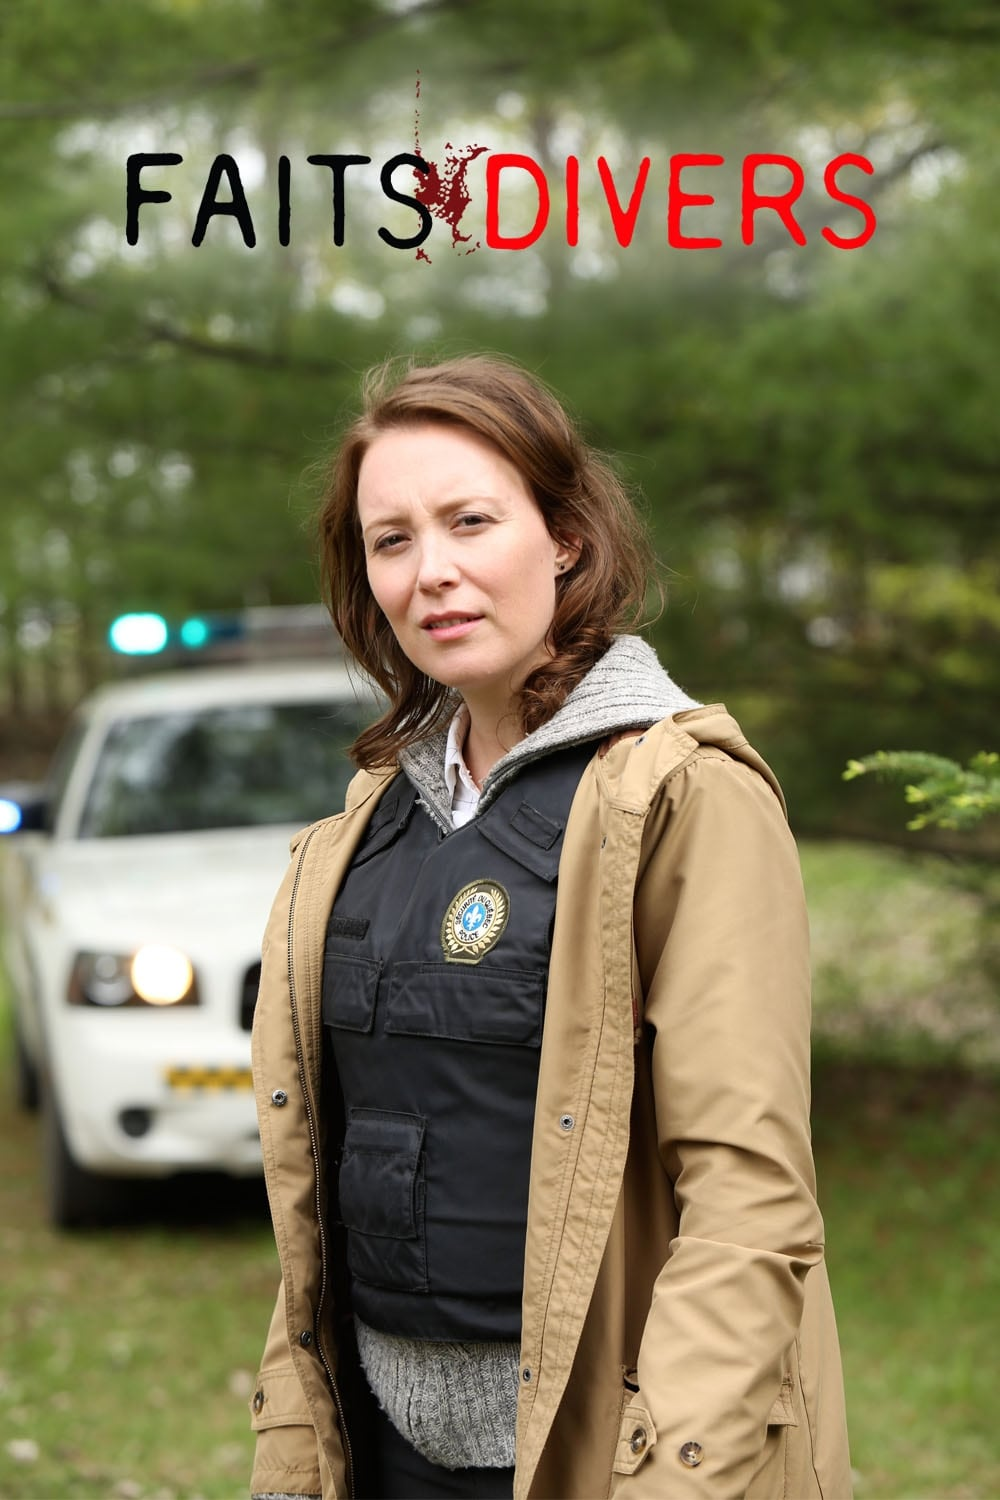 Faits divers TV Shows About Murder Investigation